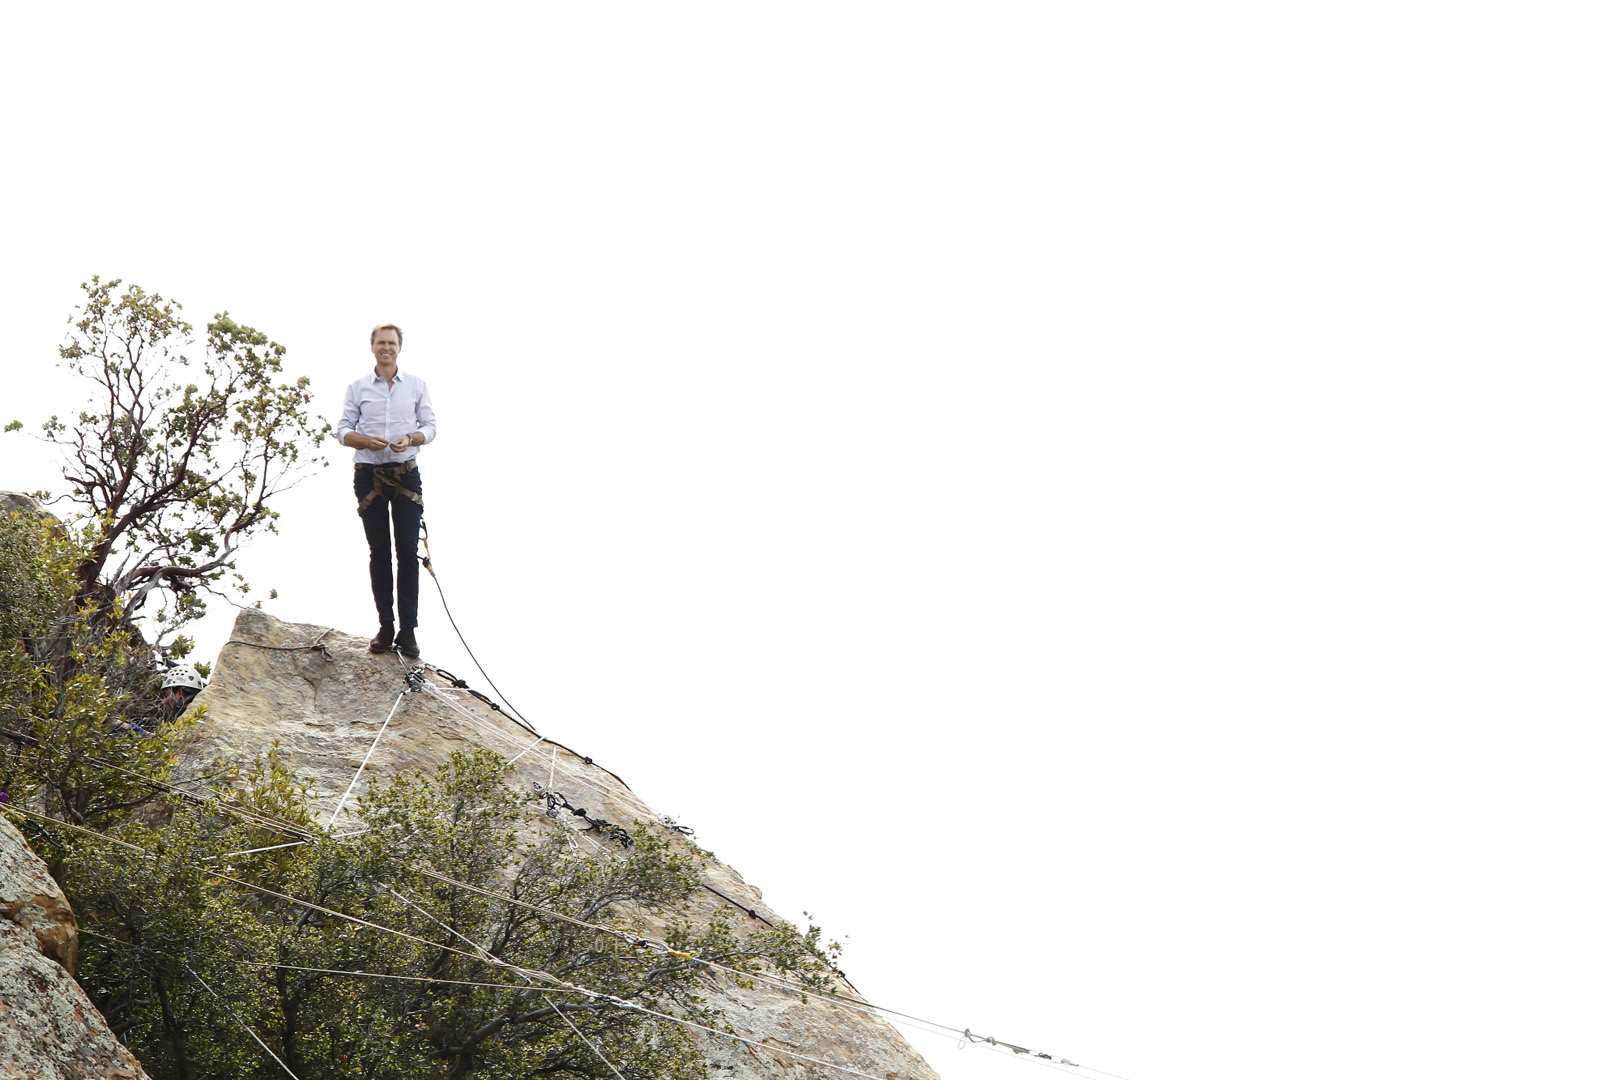 Host Phil Koeghan surveys the beautiful view of southern California from his spot on the mountain.